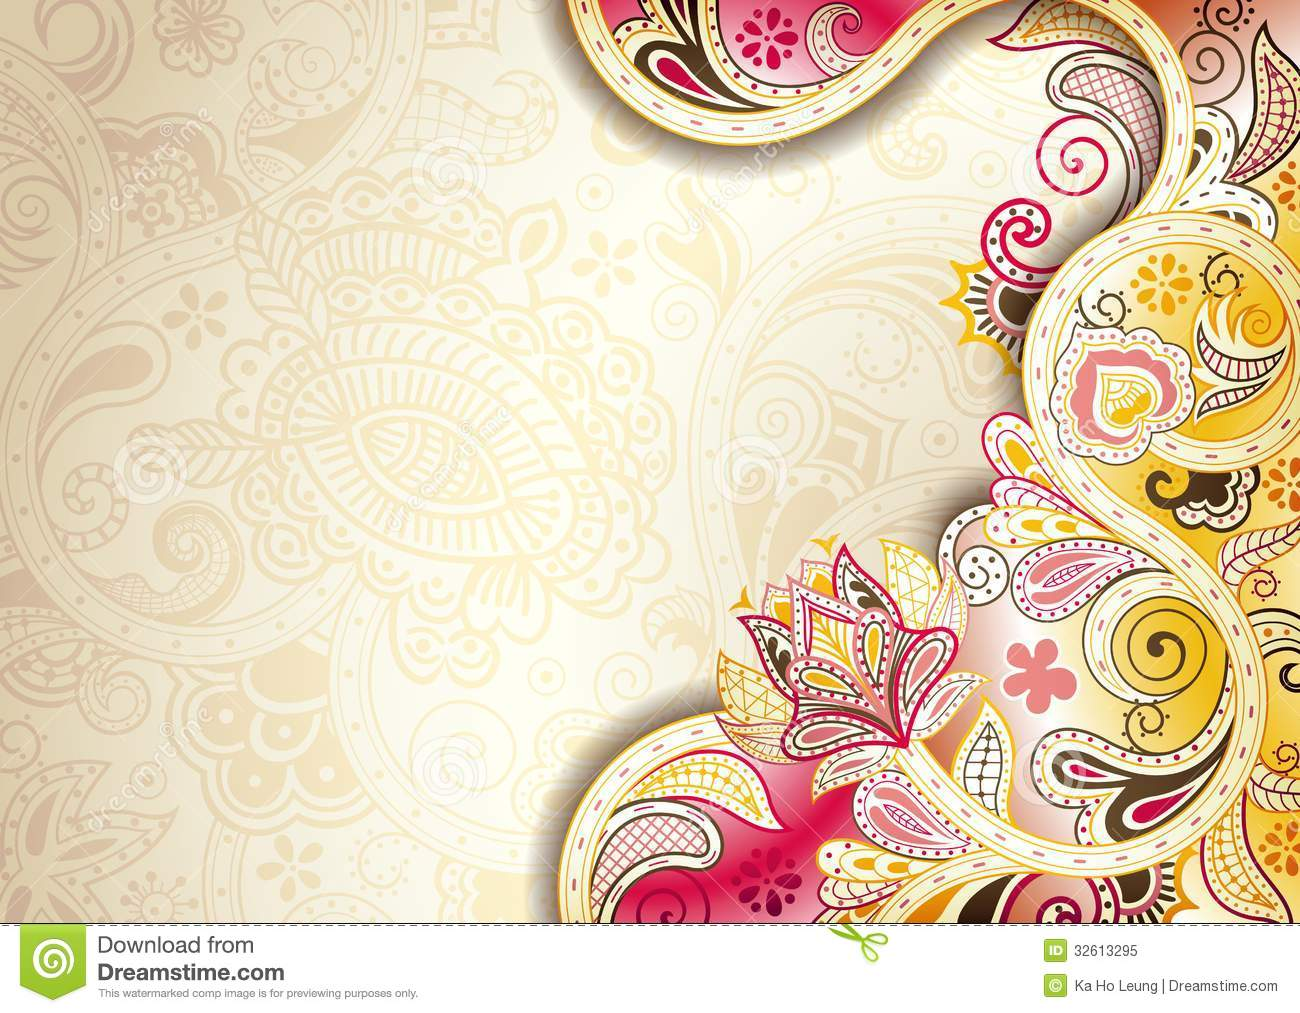 Background floral images banner library Free floral background images - ClipartFest banner library